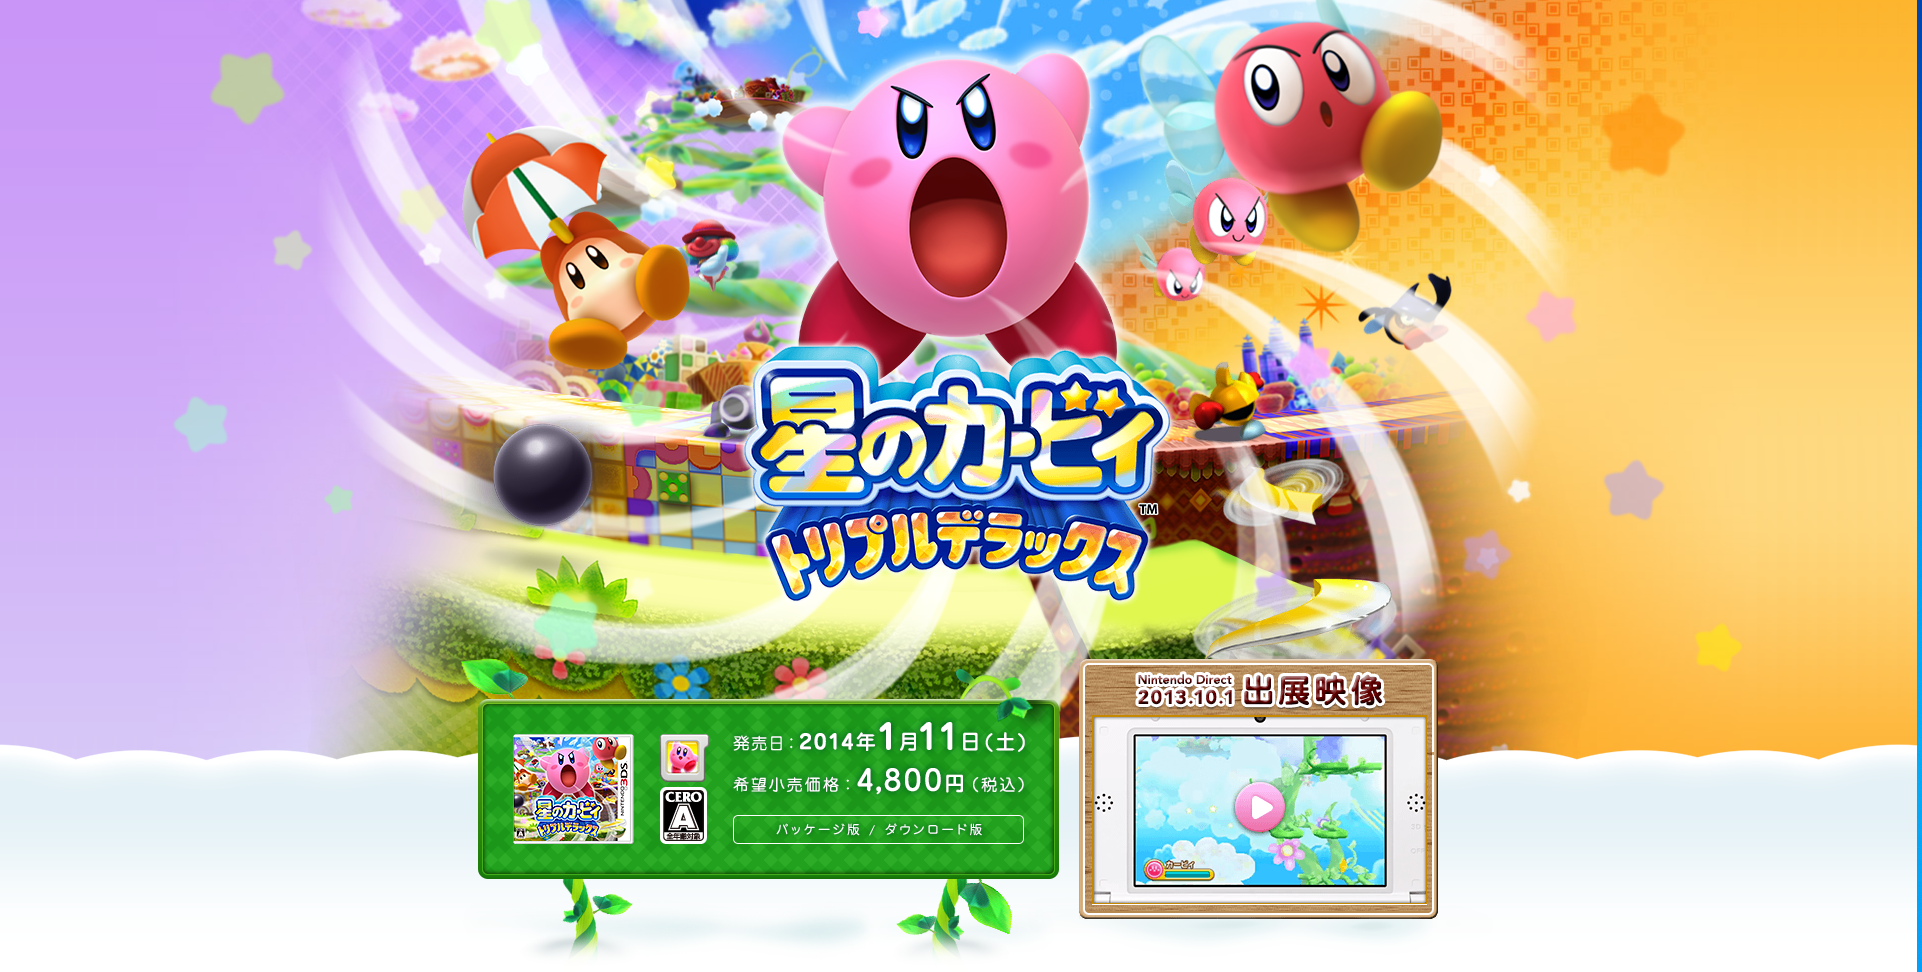 Japan will see a January release for Kirby Triple Deluxe